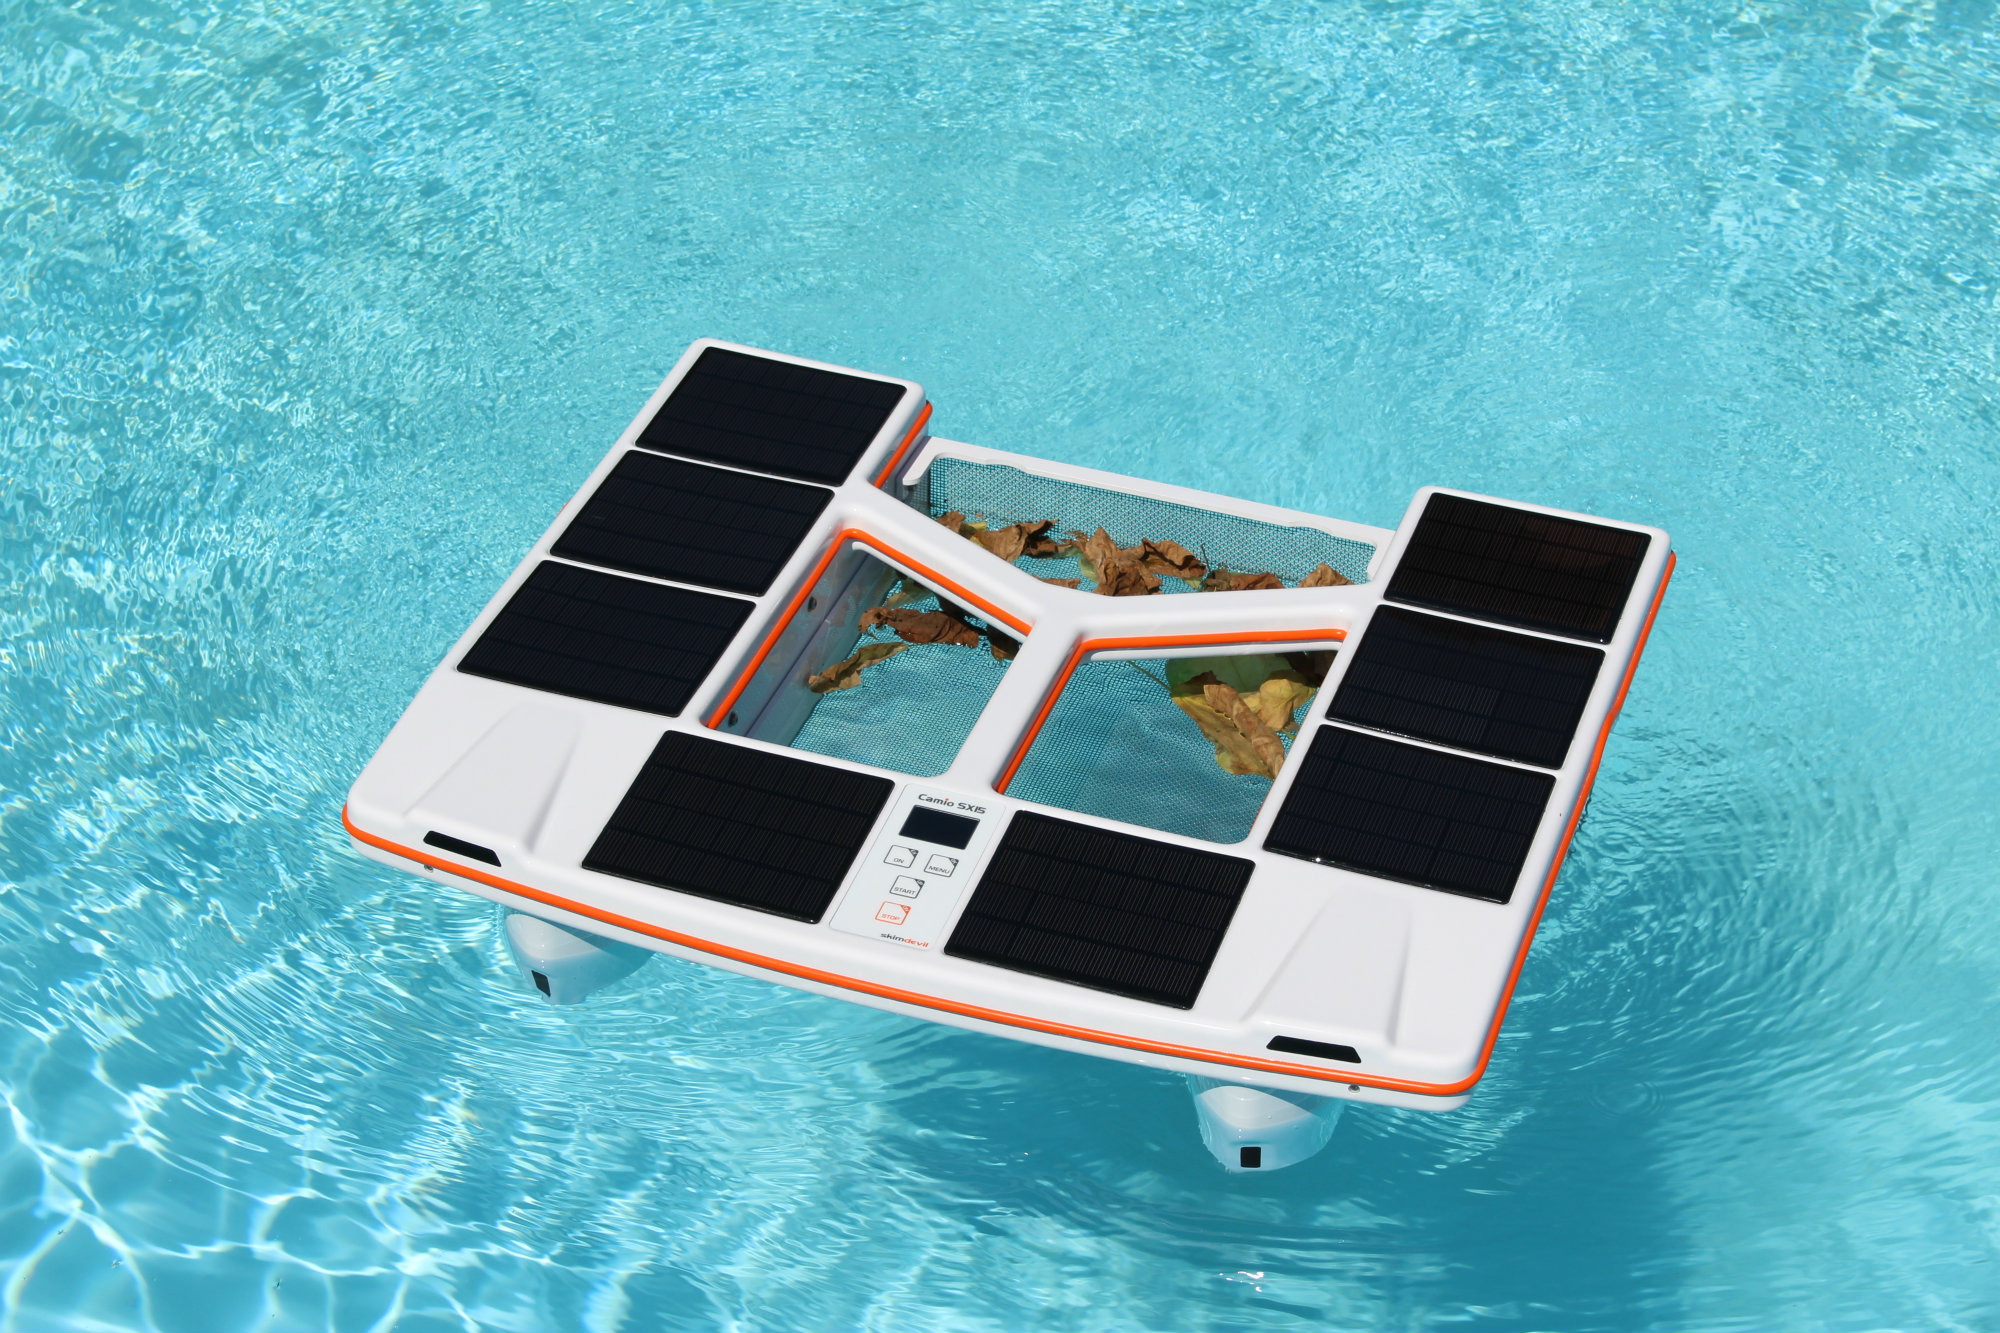 New Skimdevil Robotic Pool Cleaner Gives Users Remote